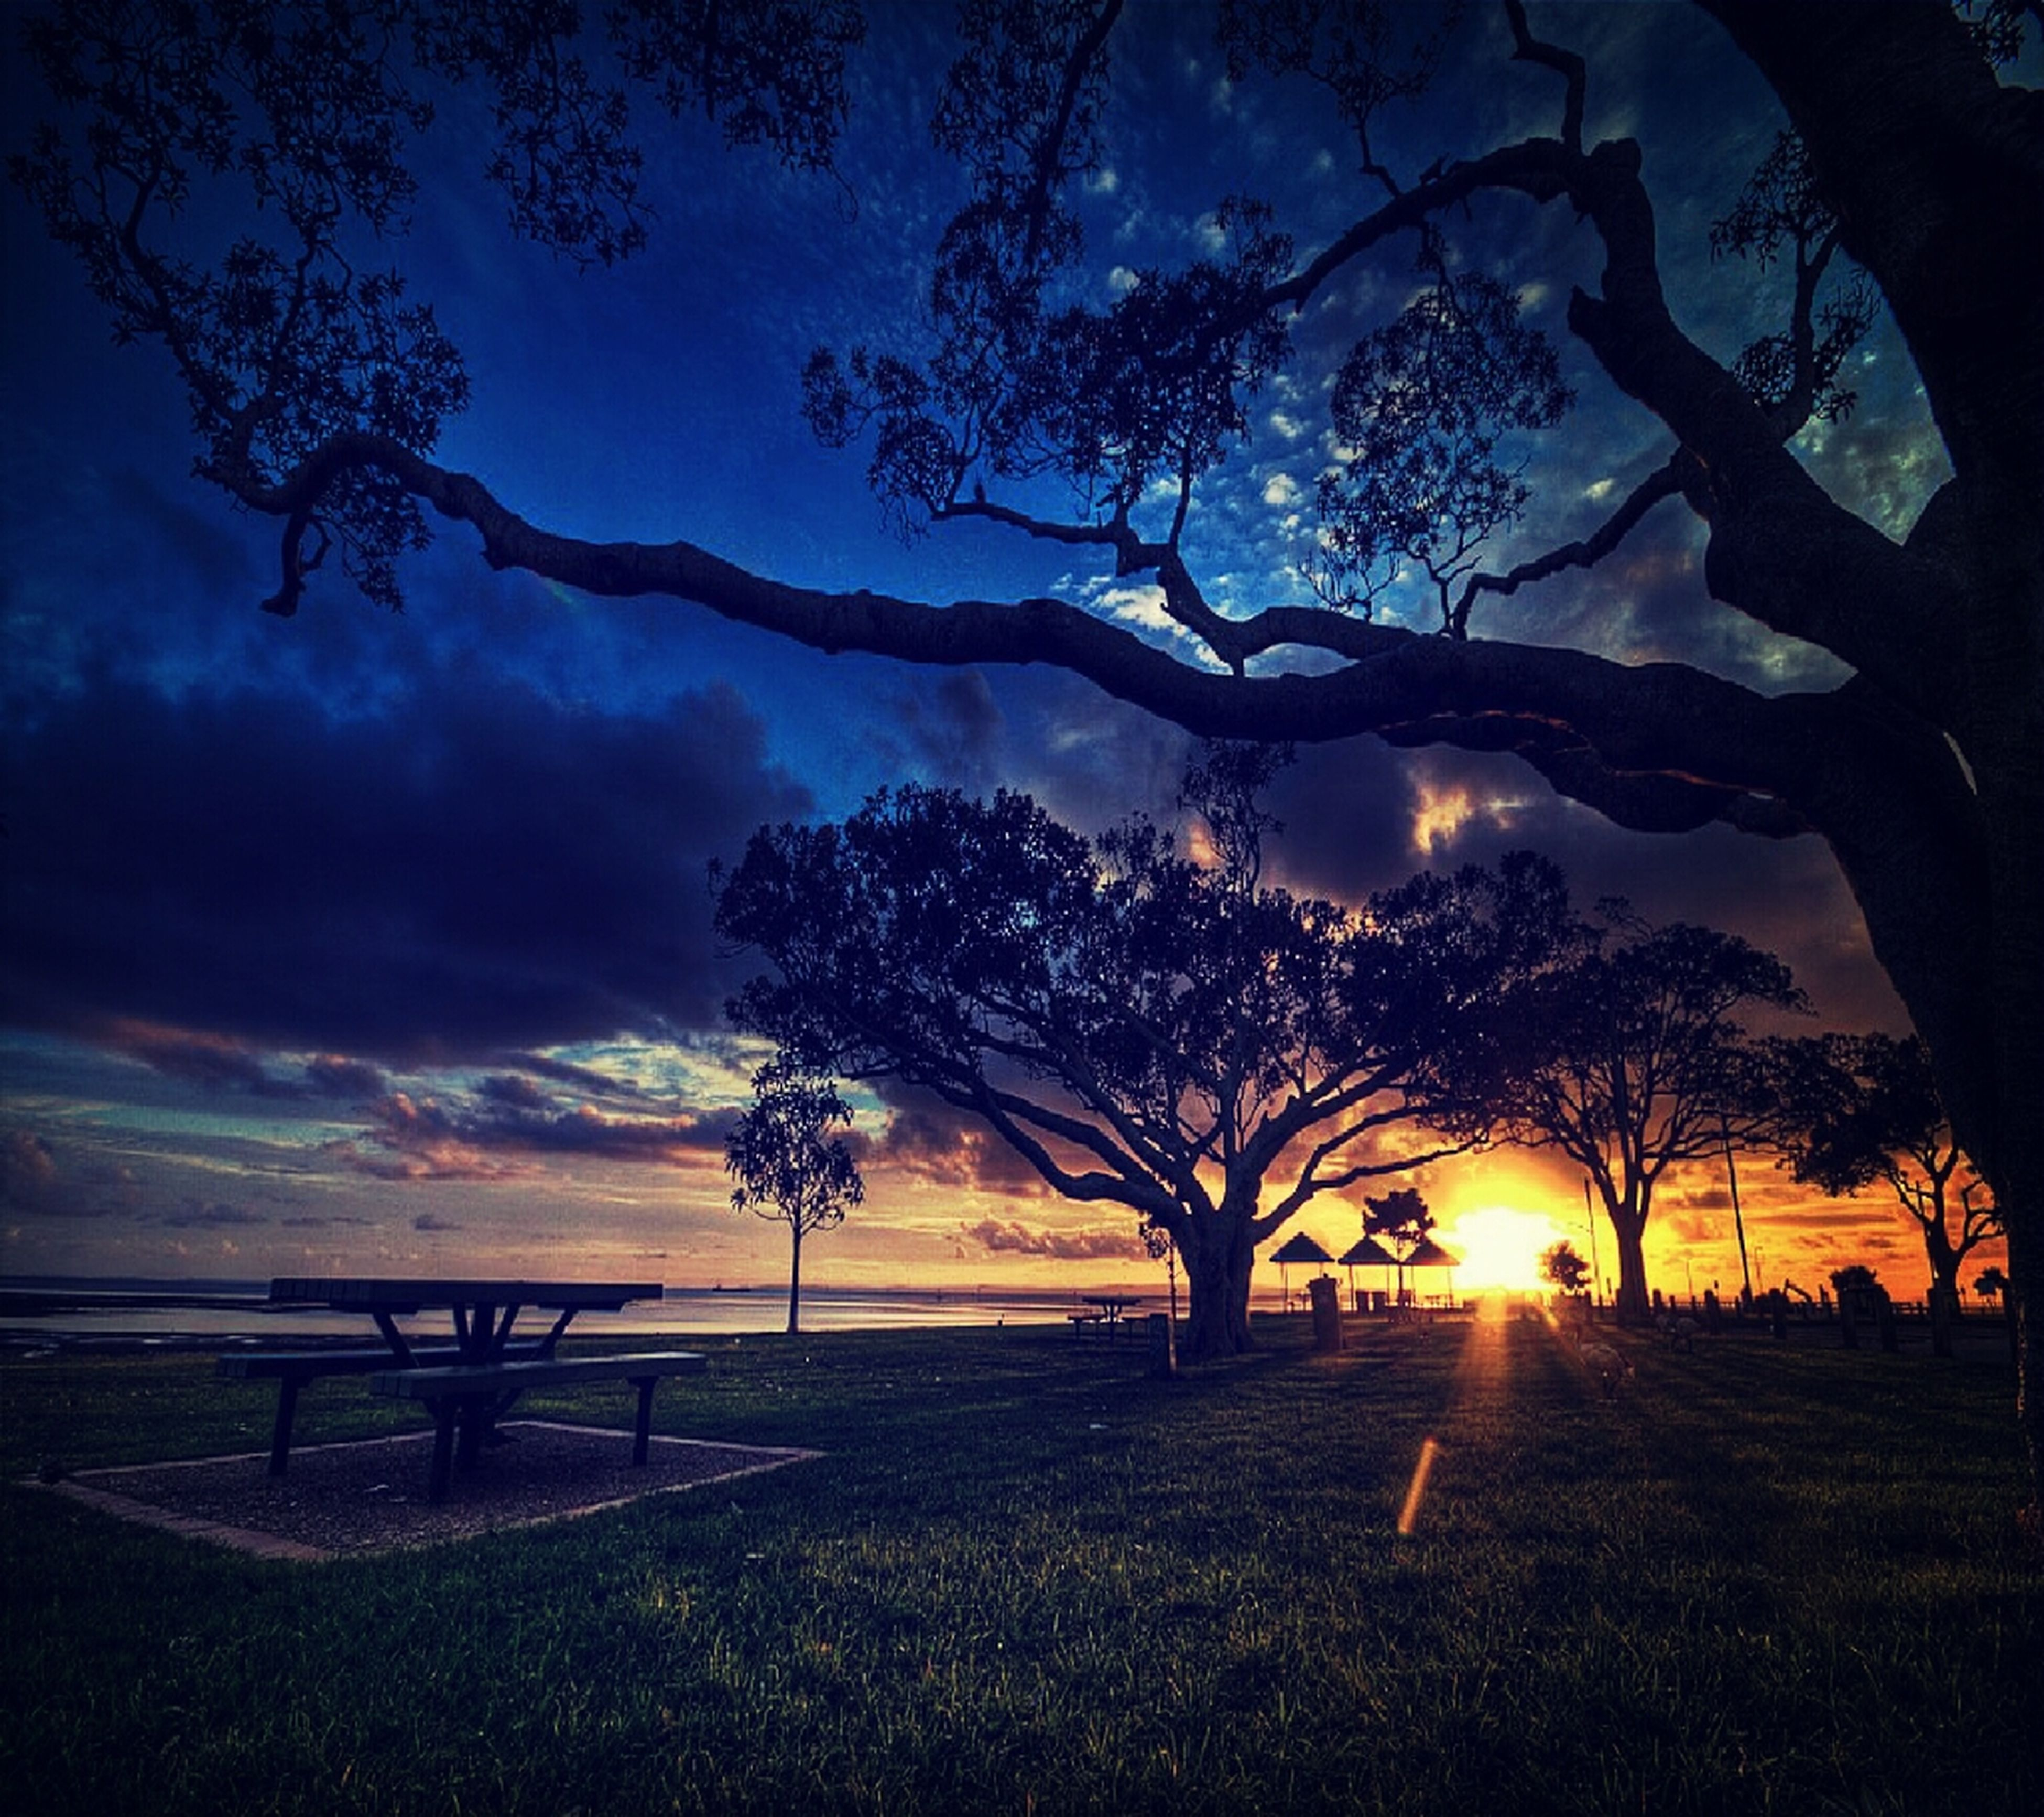 tree, sky, tranquility, sunset, tranquil scene, scenics, bare tree, silhouette, beauty in nature, cloud - sky, nature, branch, idyllic, landscape, dusk, cloudy, field, cloud, outdoors, non-urban scene